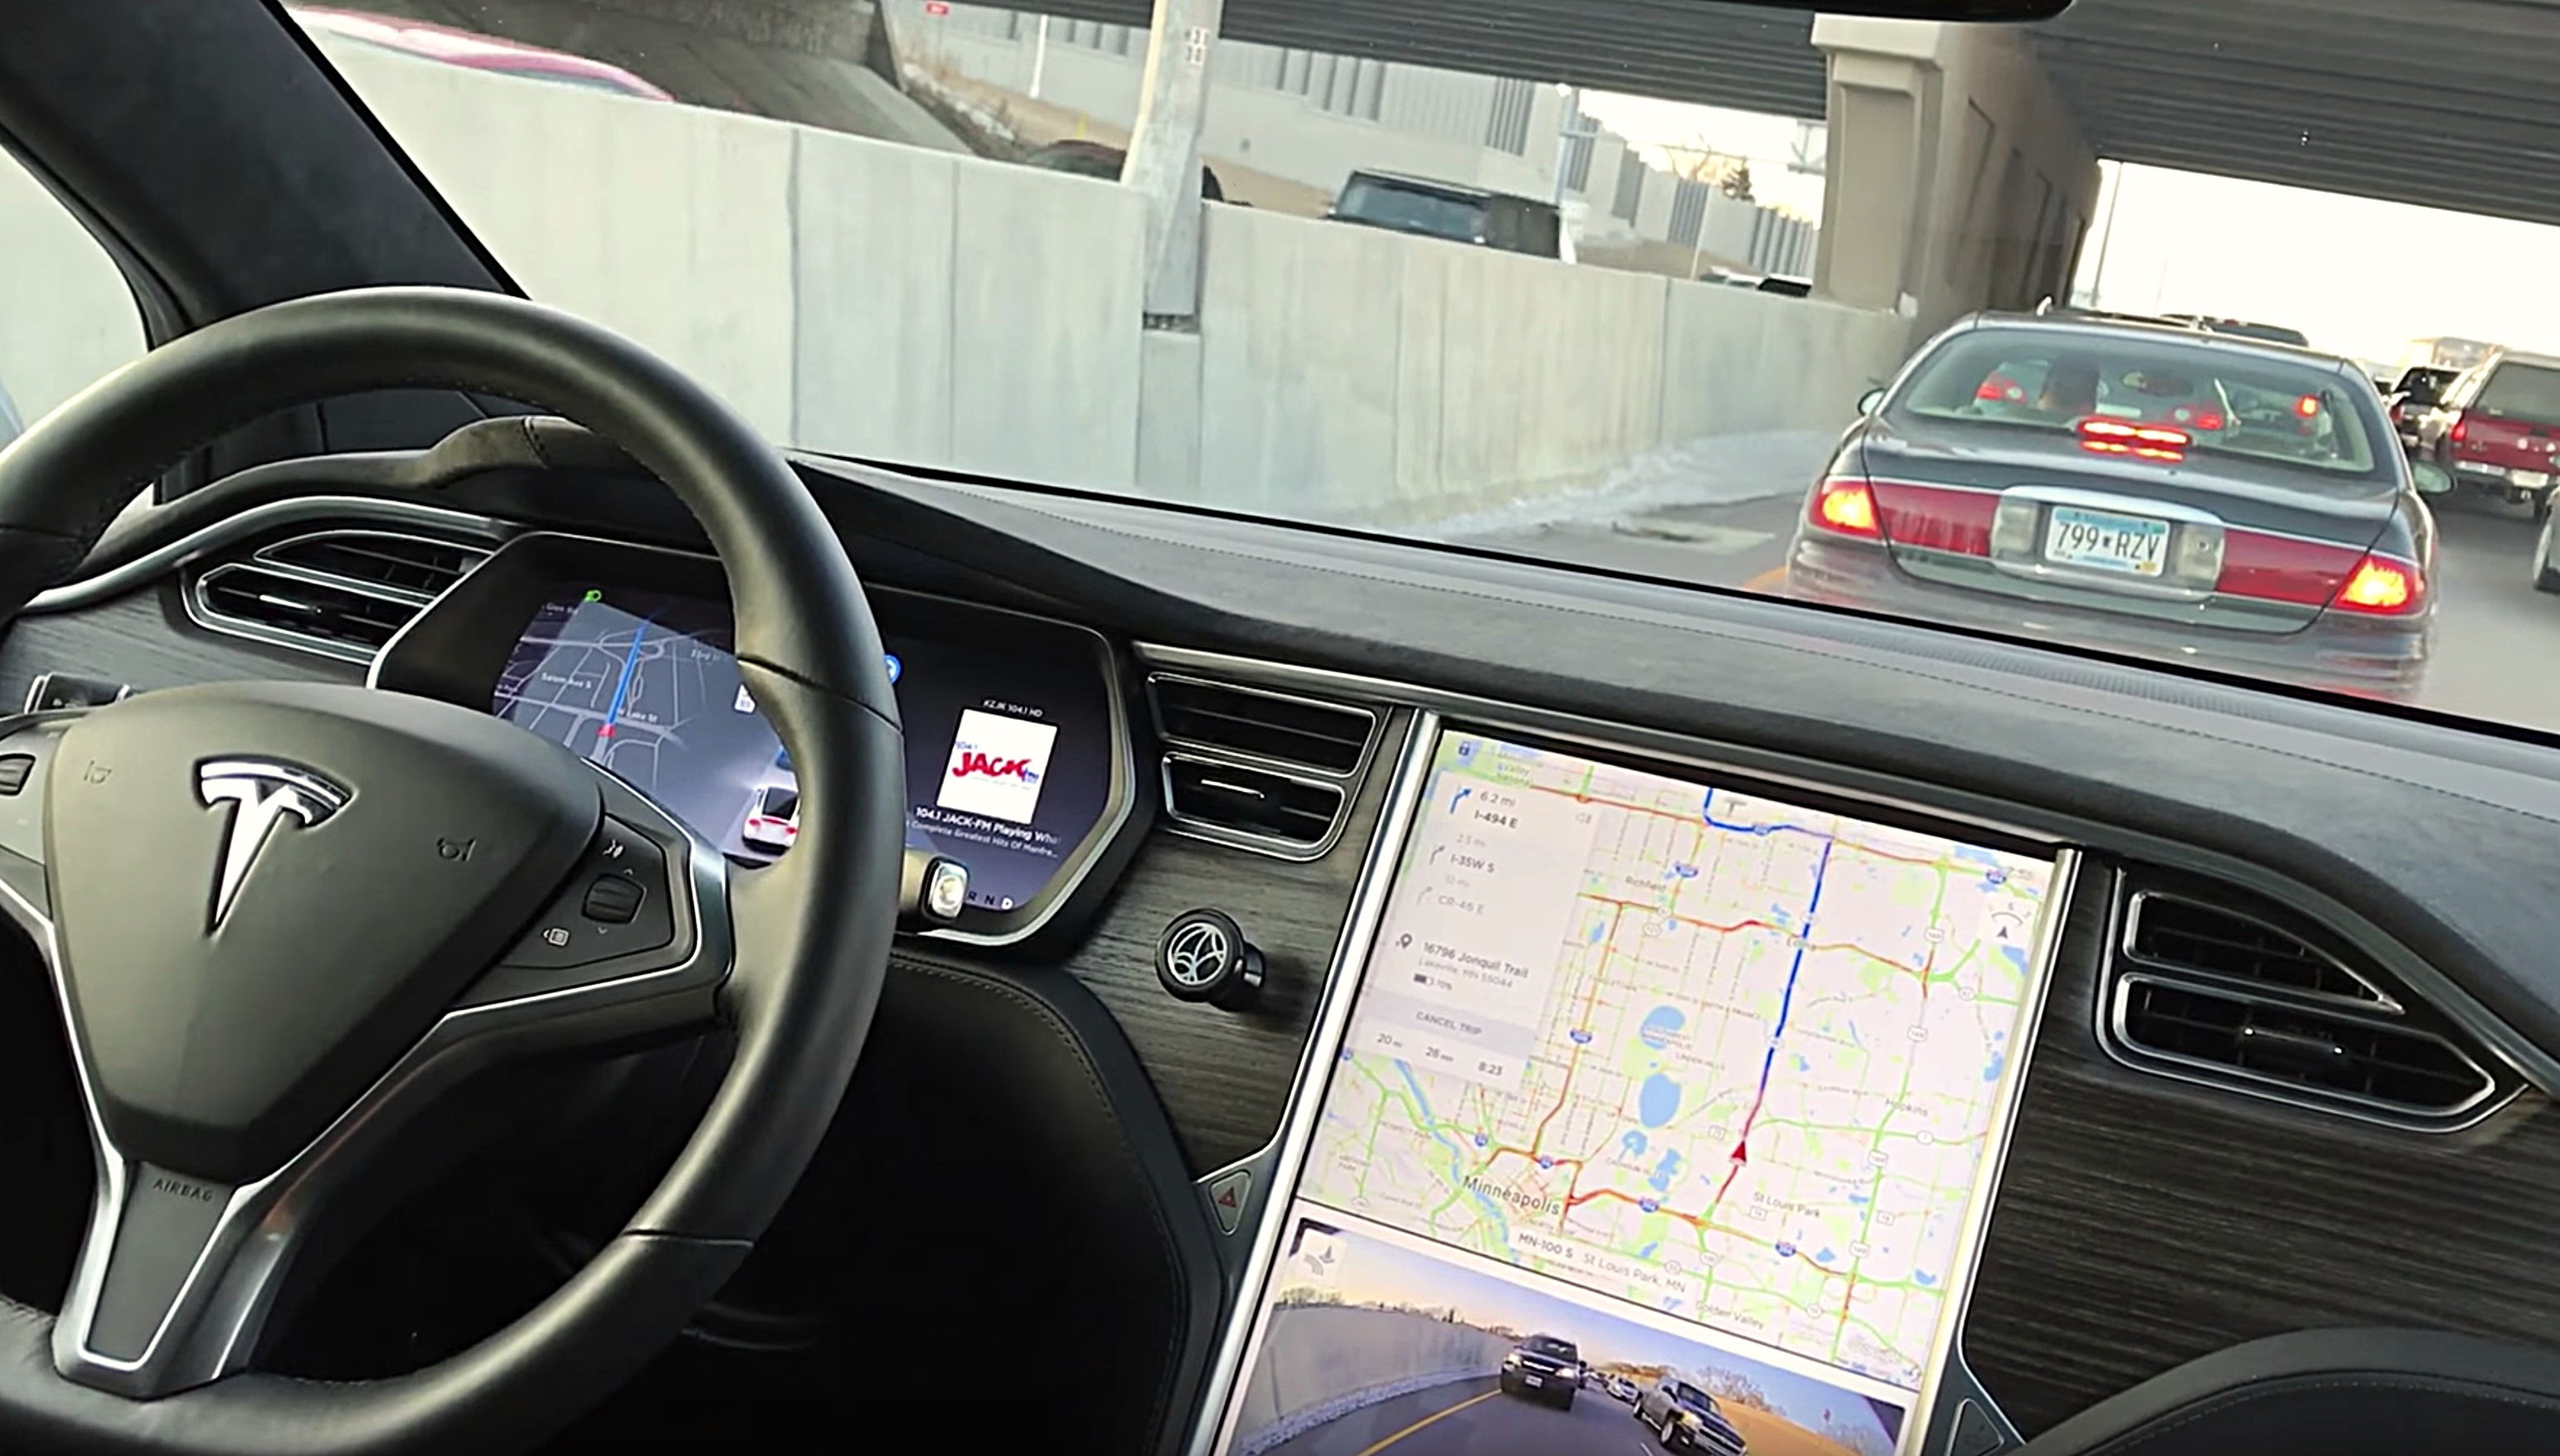 Tesla pushes Waze-like Traffic-based Navigation in latest update